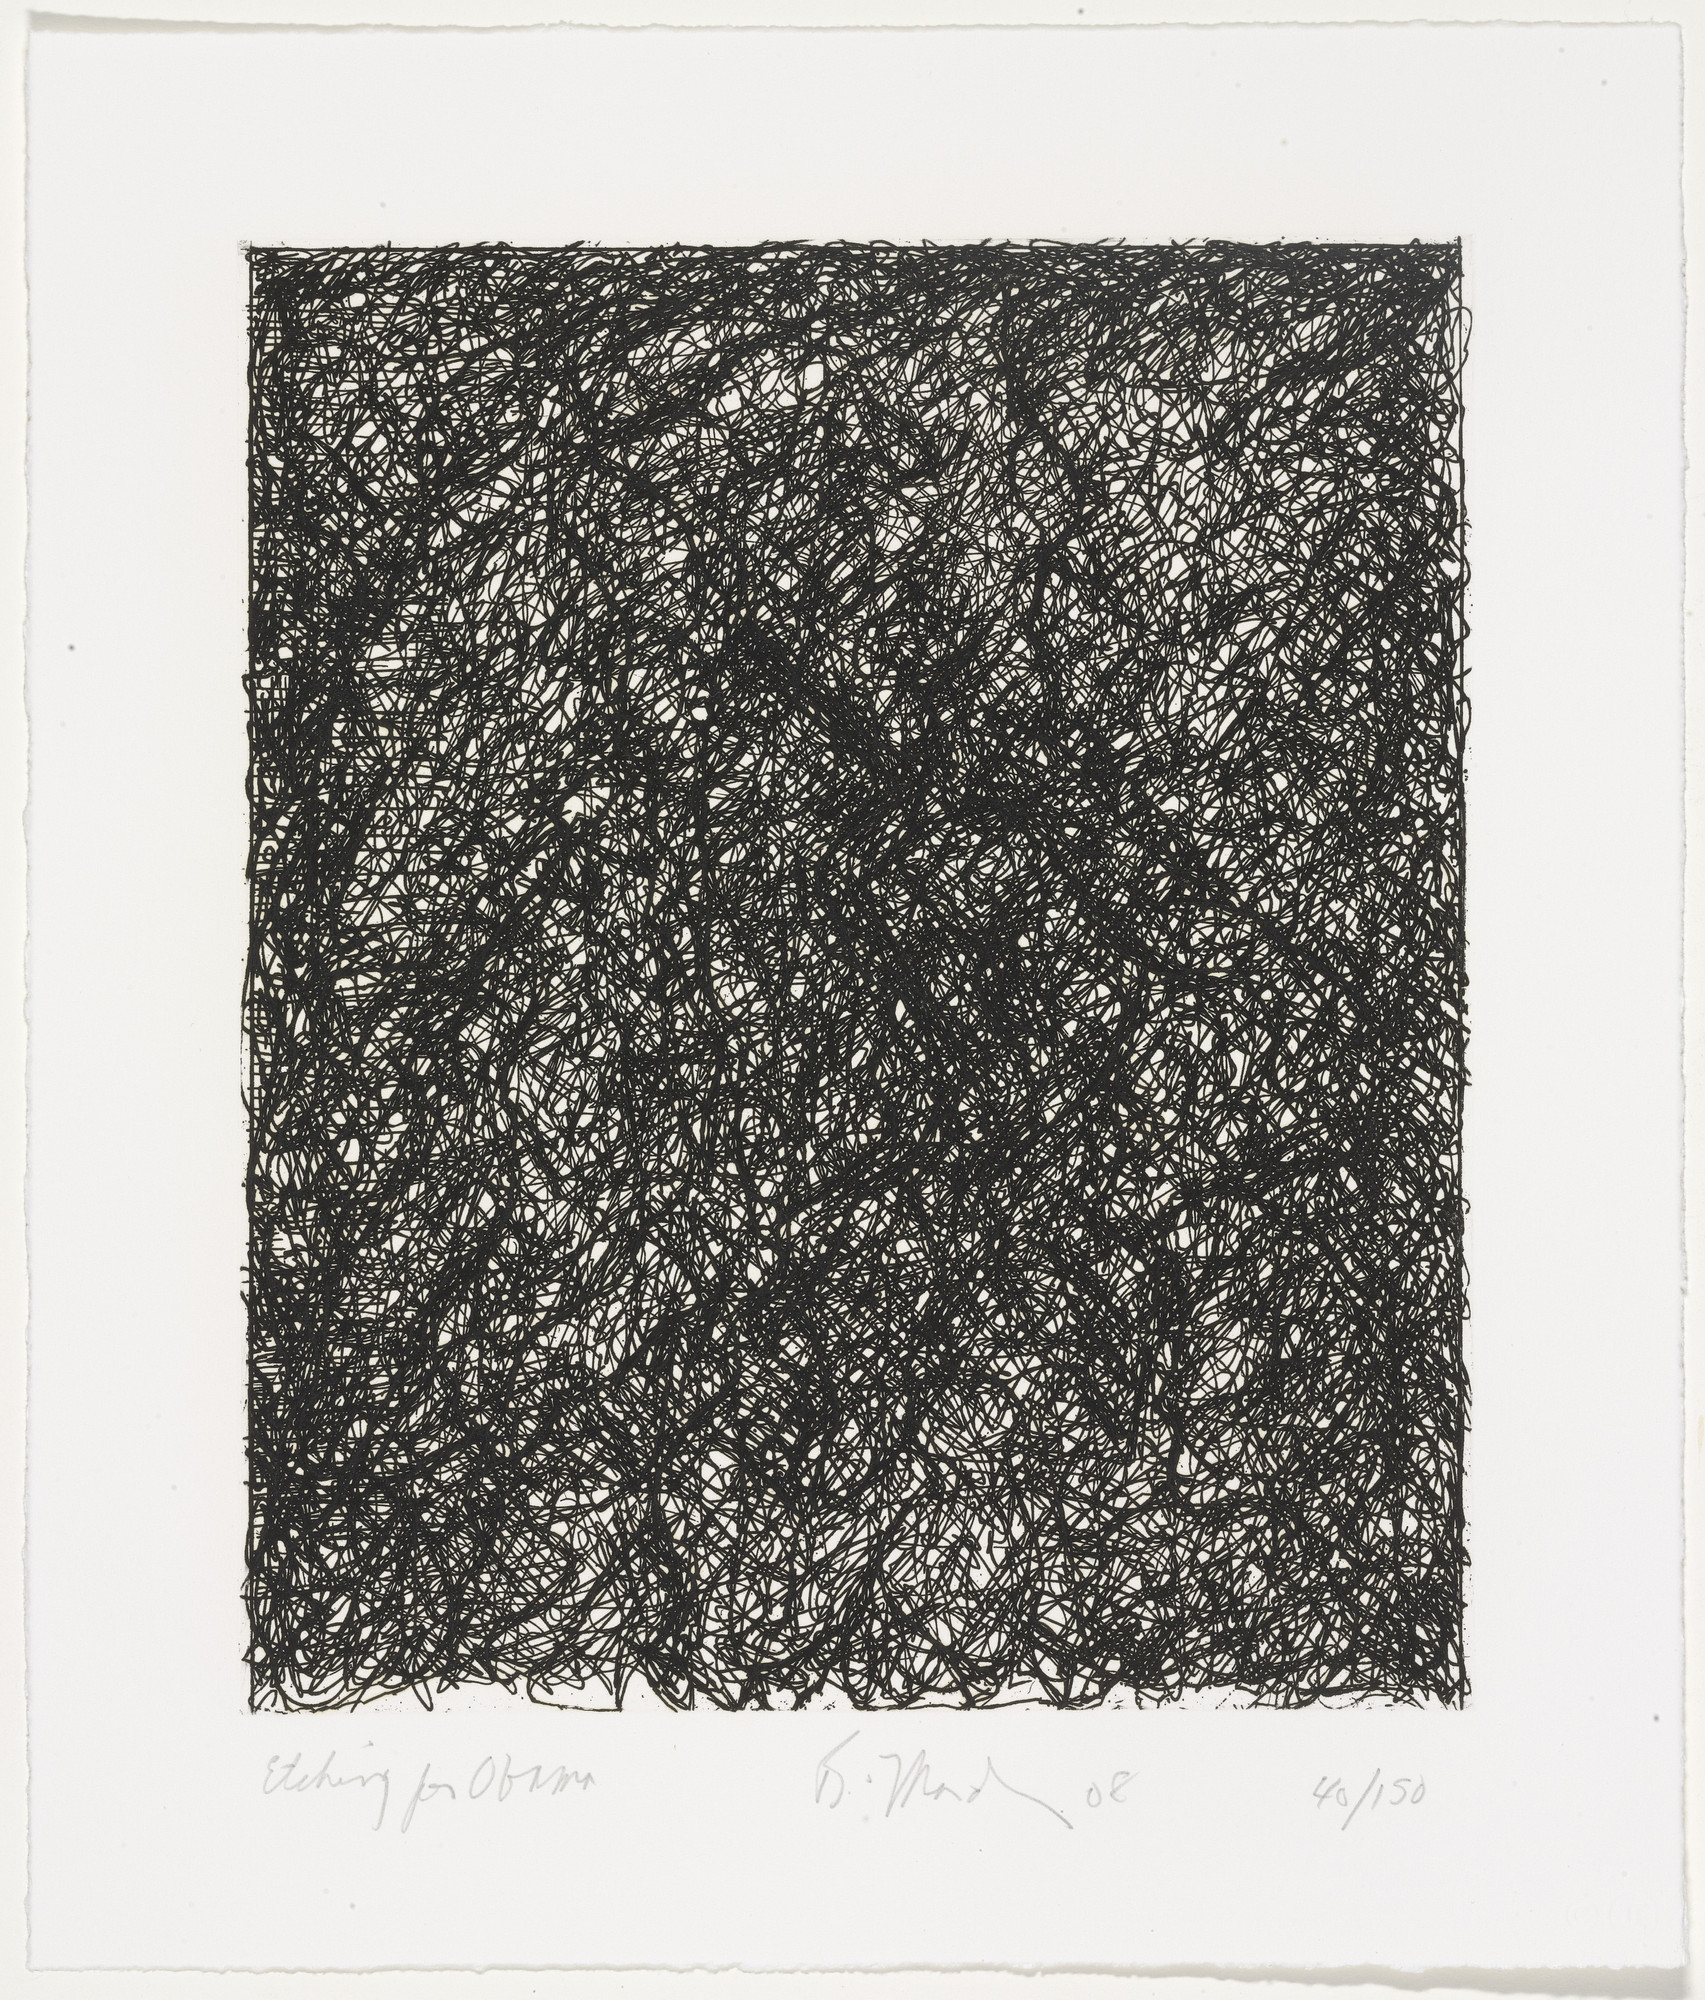 Brice Marden. Etching for Obama from Artists for Obama. 2008